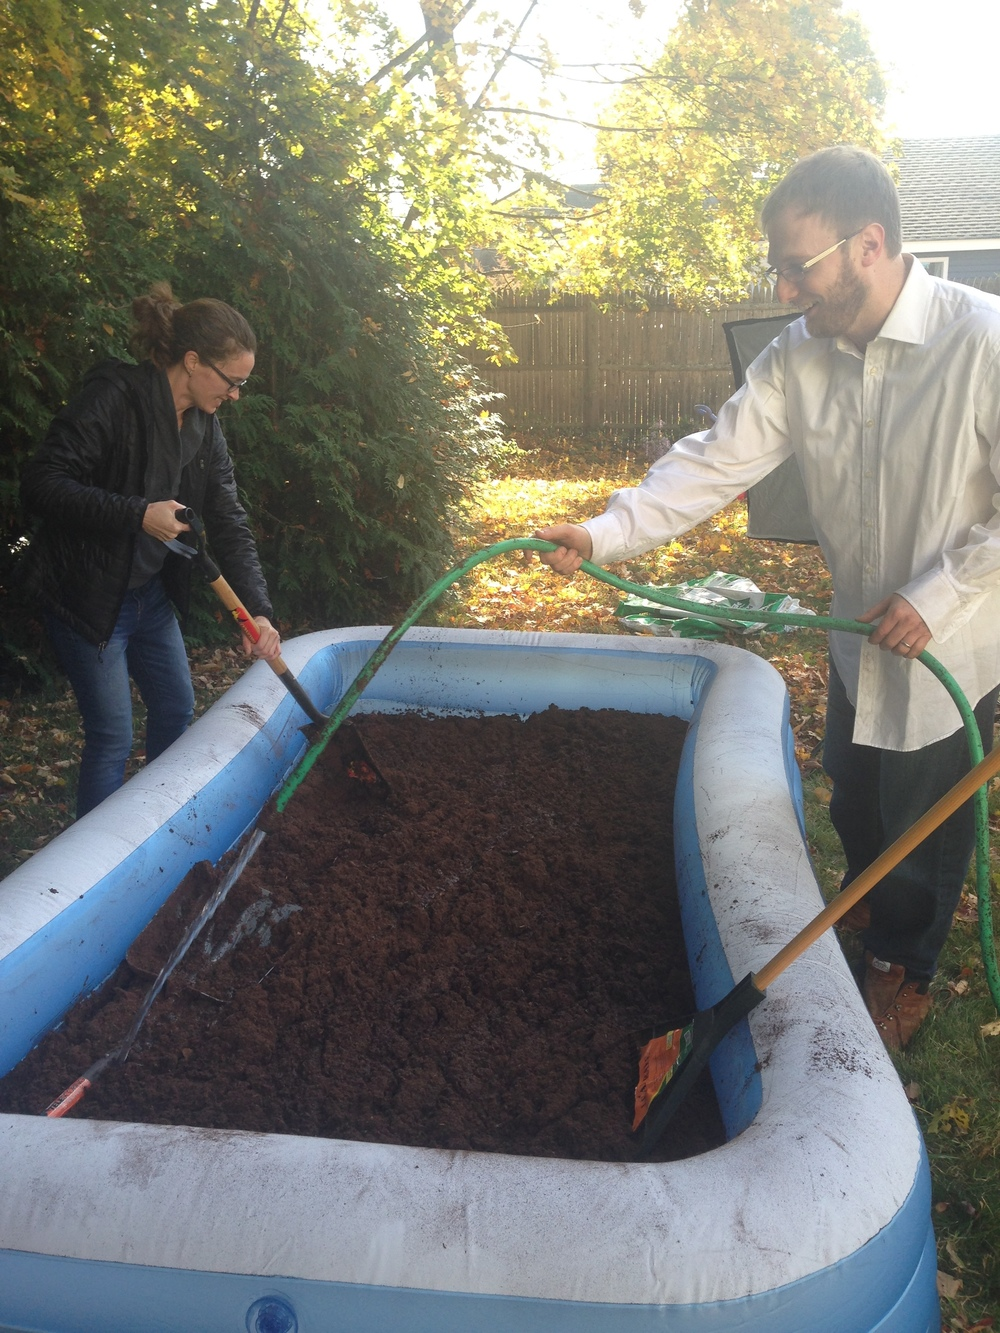 Kelly, aside from being a wonderful photographer, enjoys creating large backyard peat bogs.